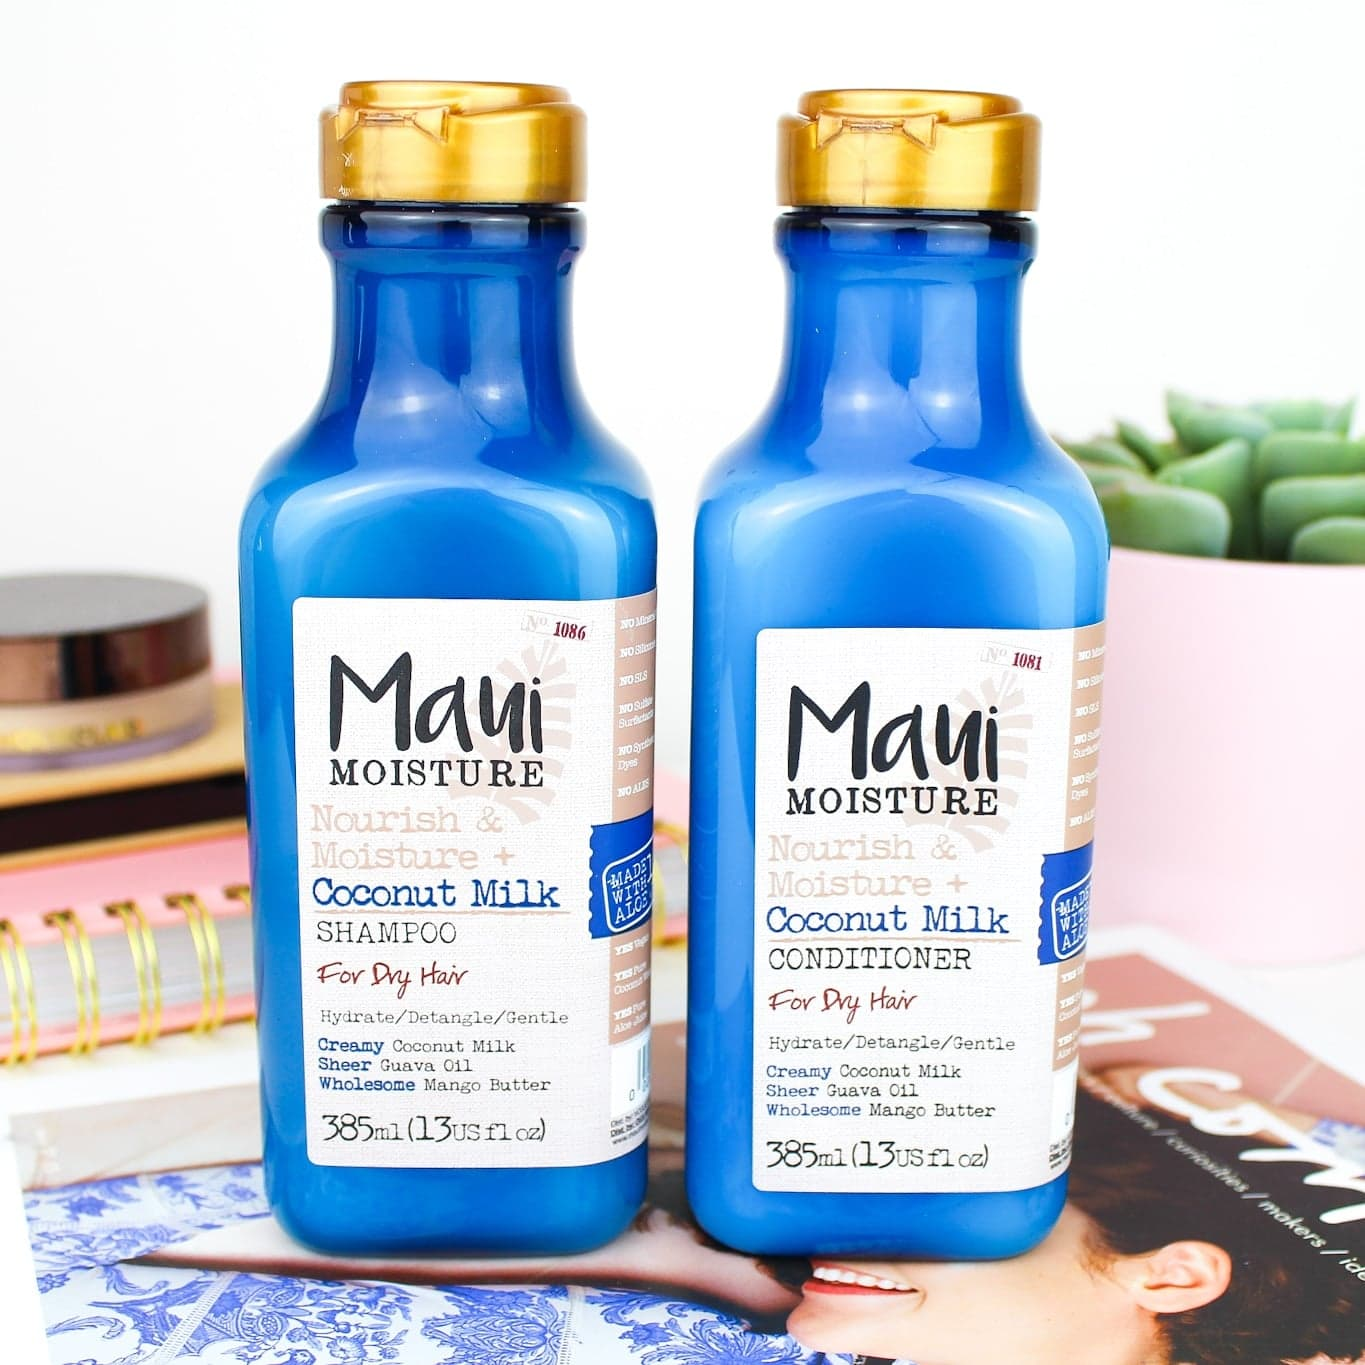 Maui Nouish & Moisture Coconut Milk Shampoo & Conditioner For Dry Hair